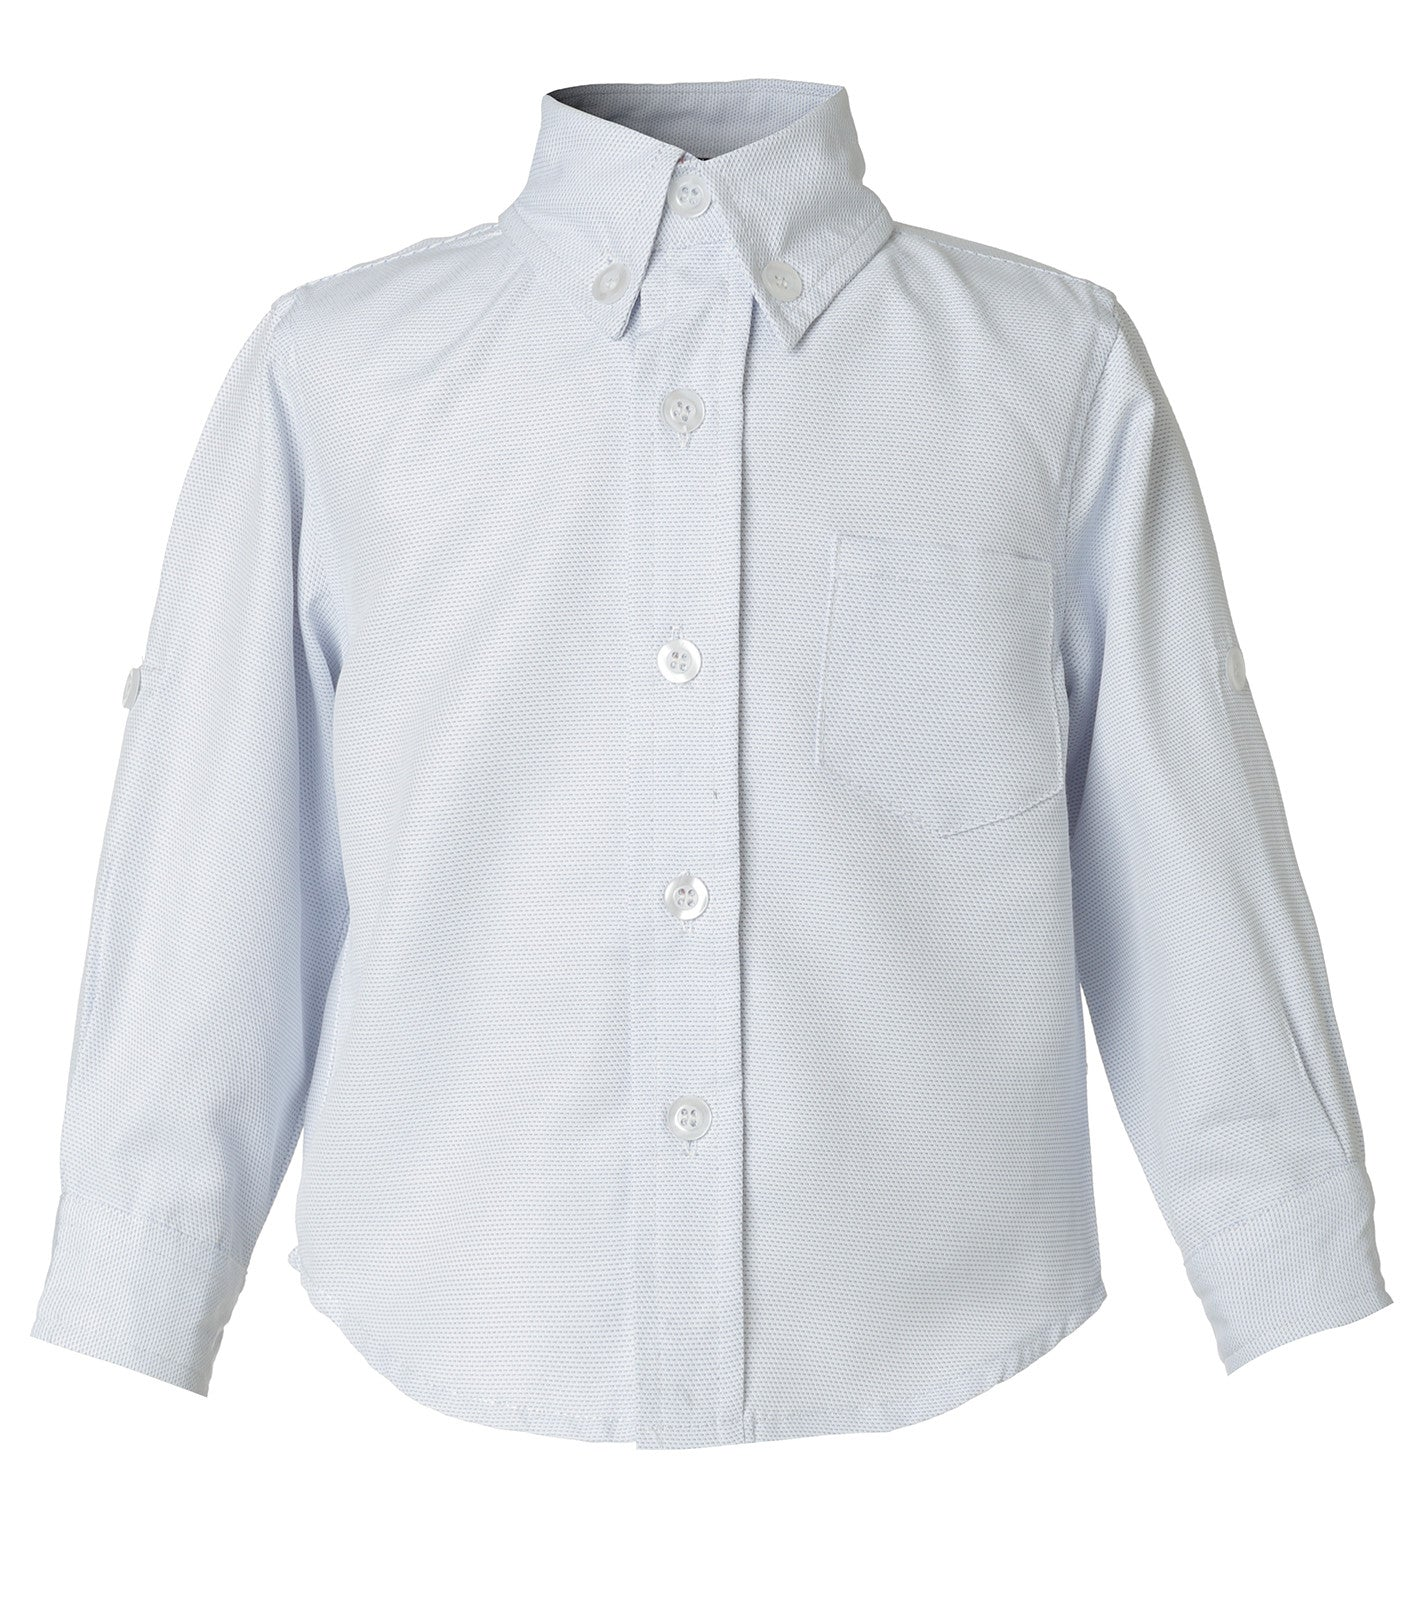 Boy Light Dress Shirt